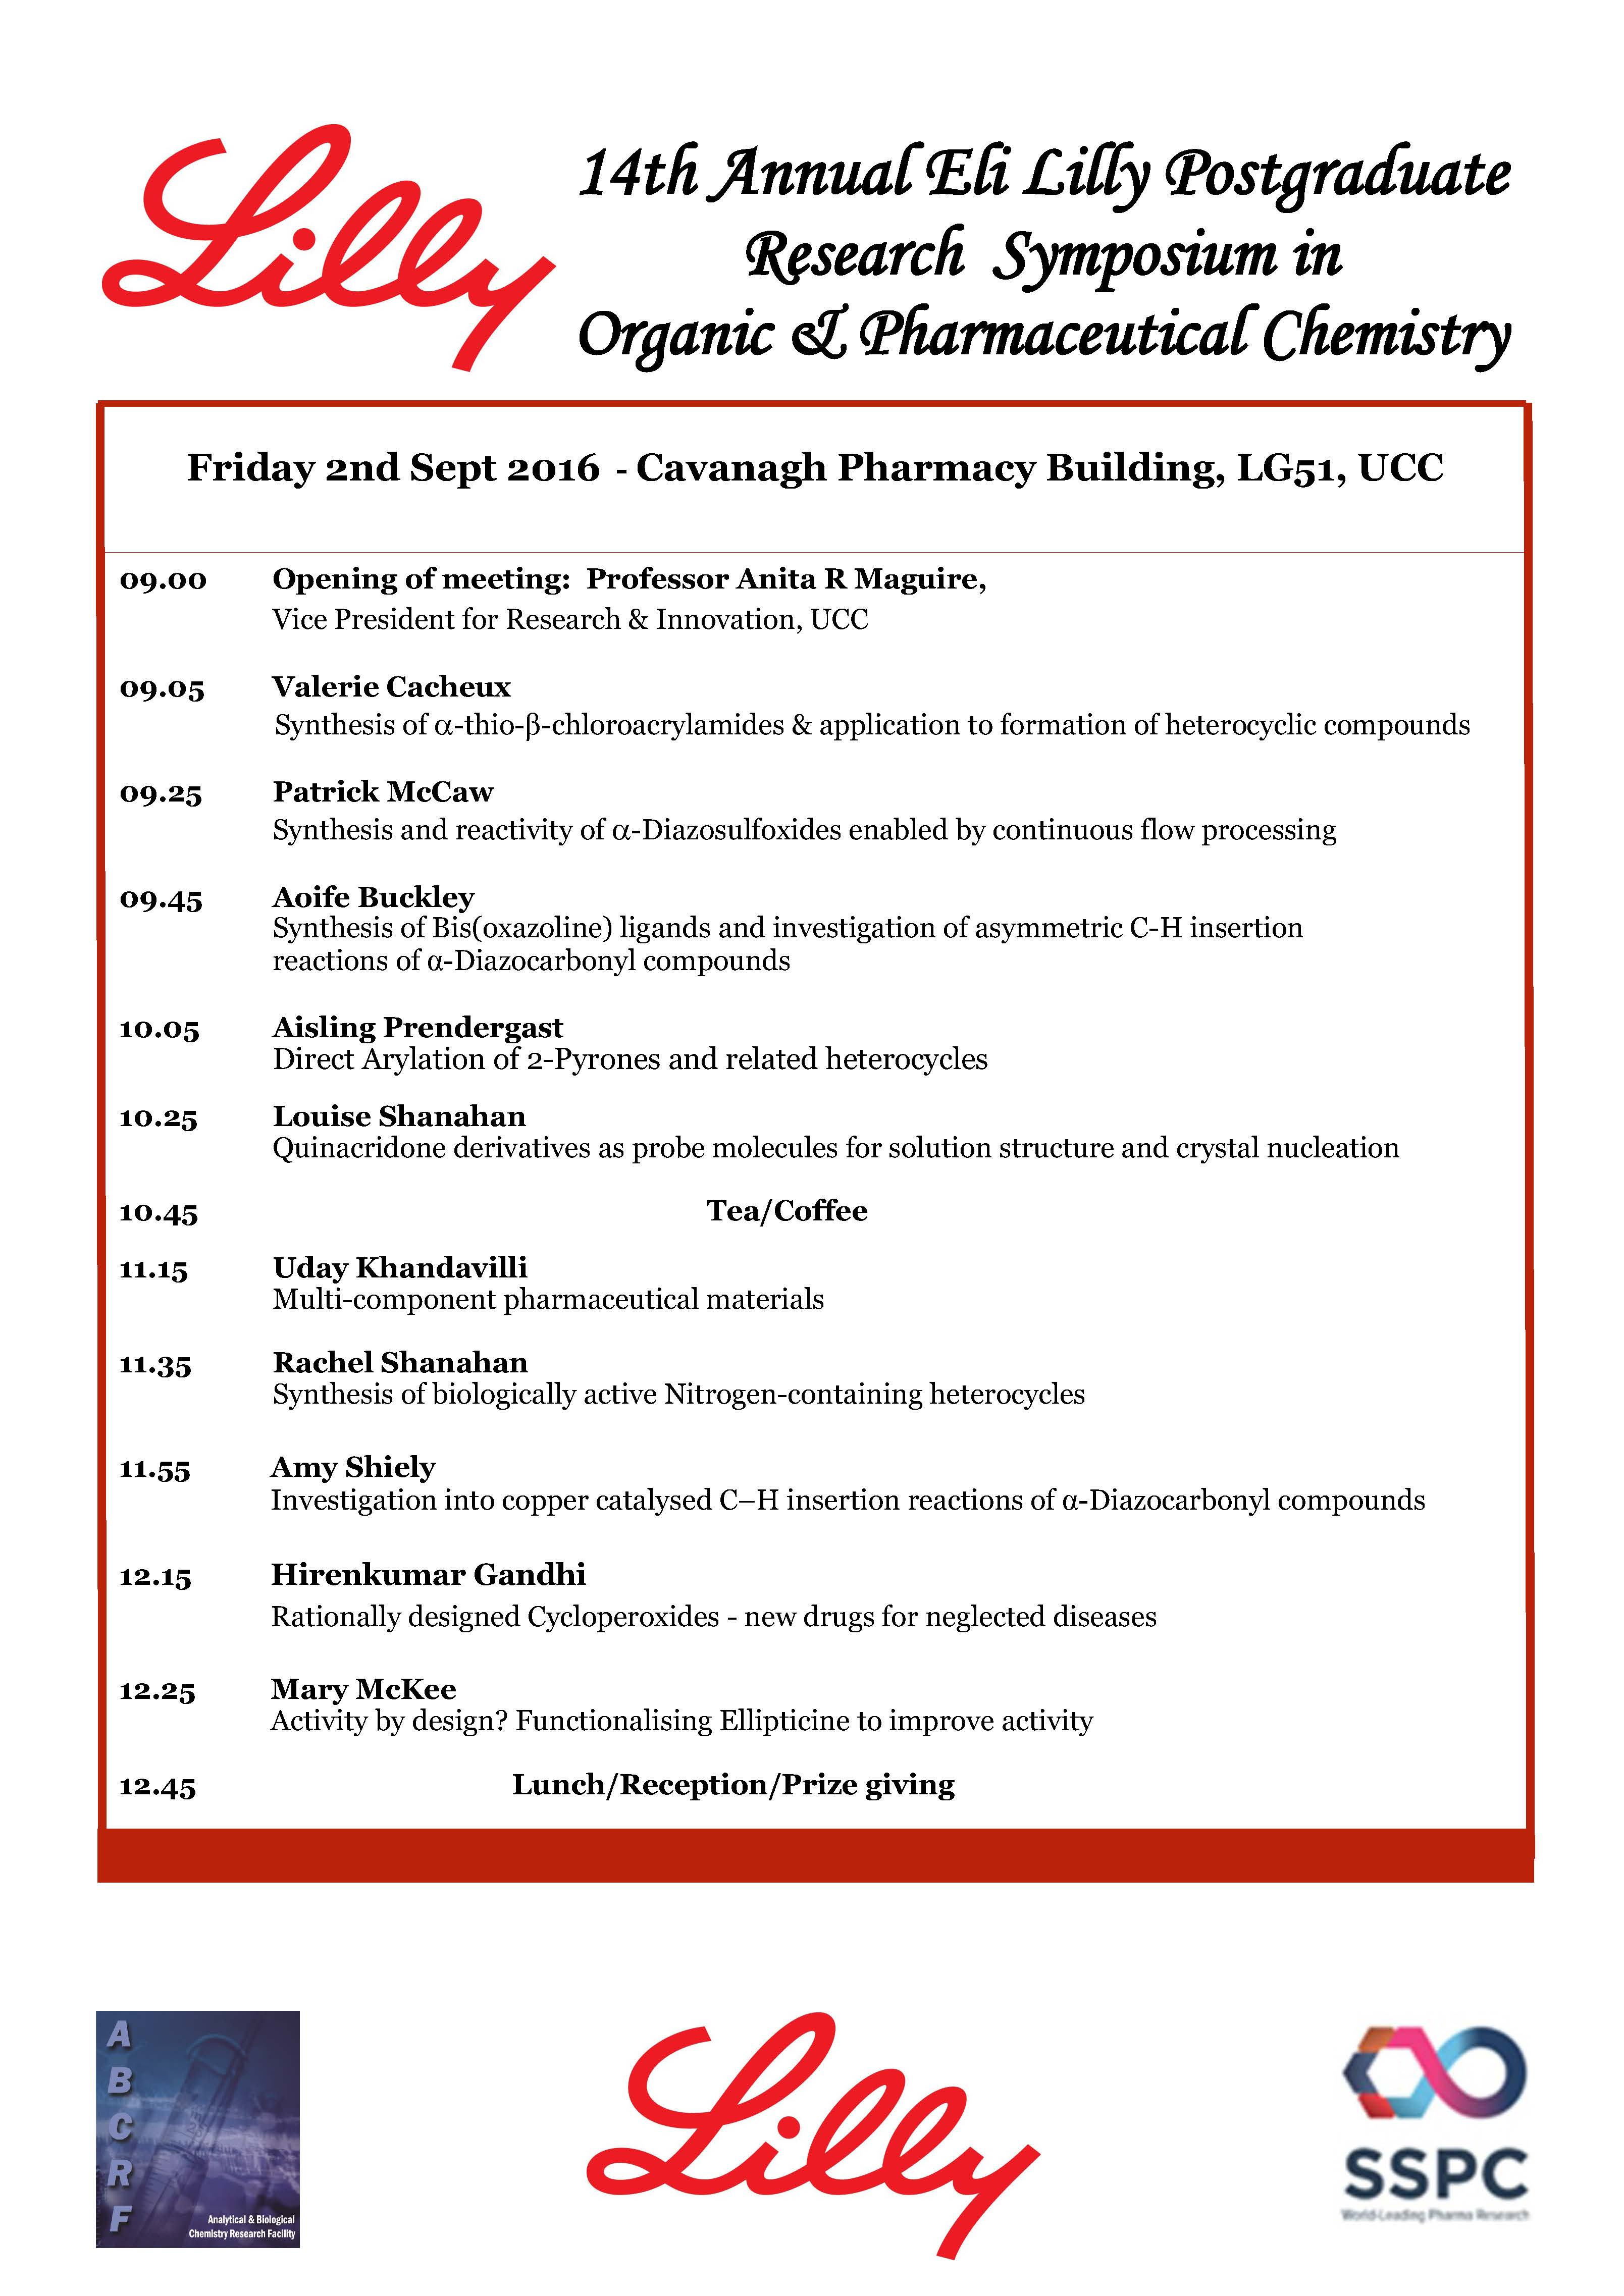 14th Annual Eli Lilly Postgraduate Research Symposium